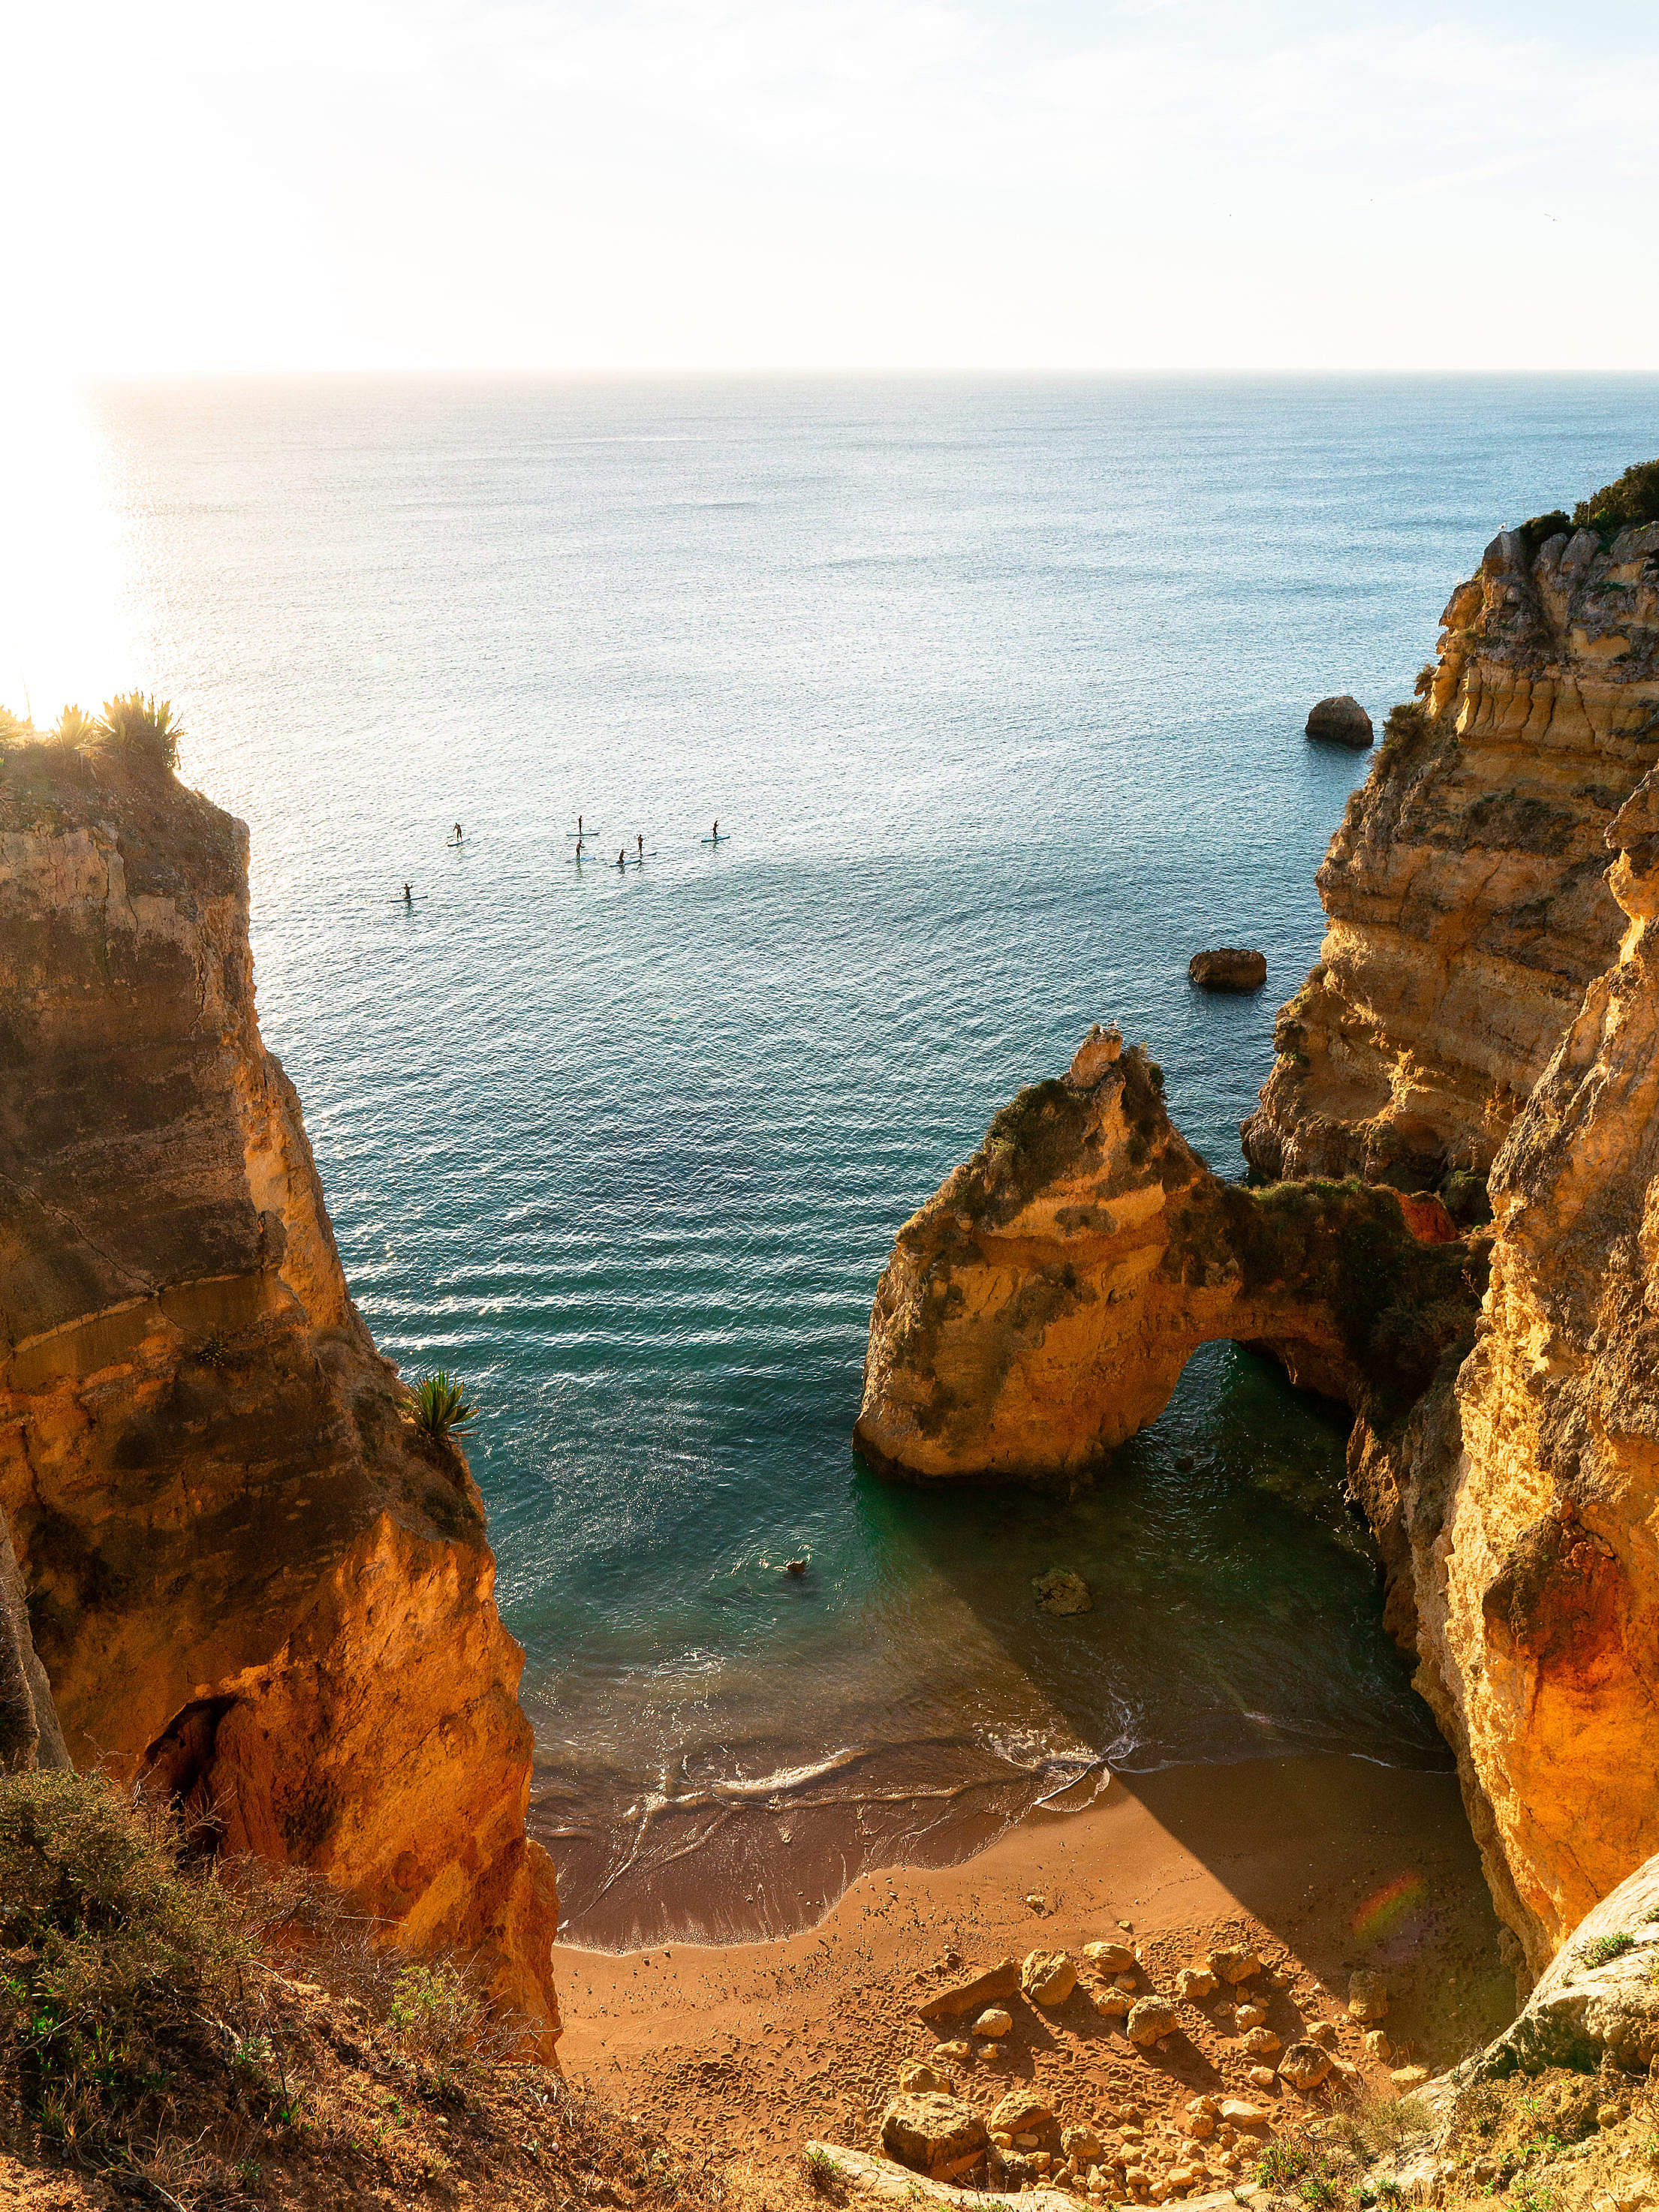 Paddleboarding Between Sea Pillars of Southern Portugal Free Stock Photo